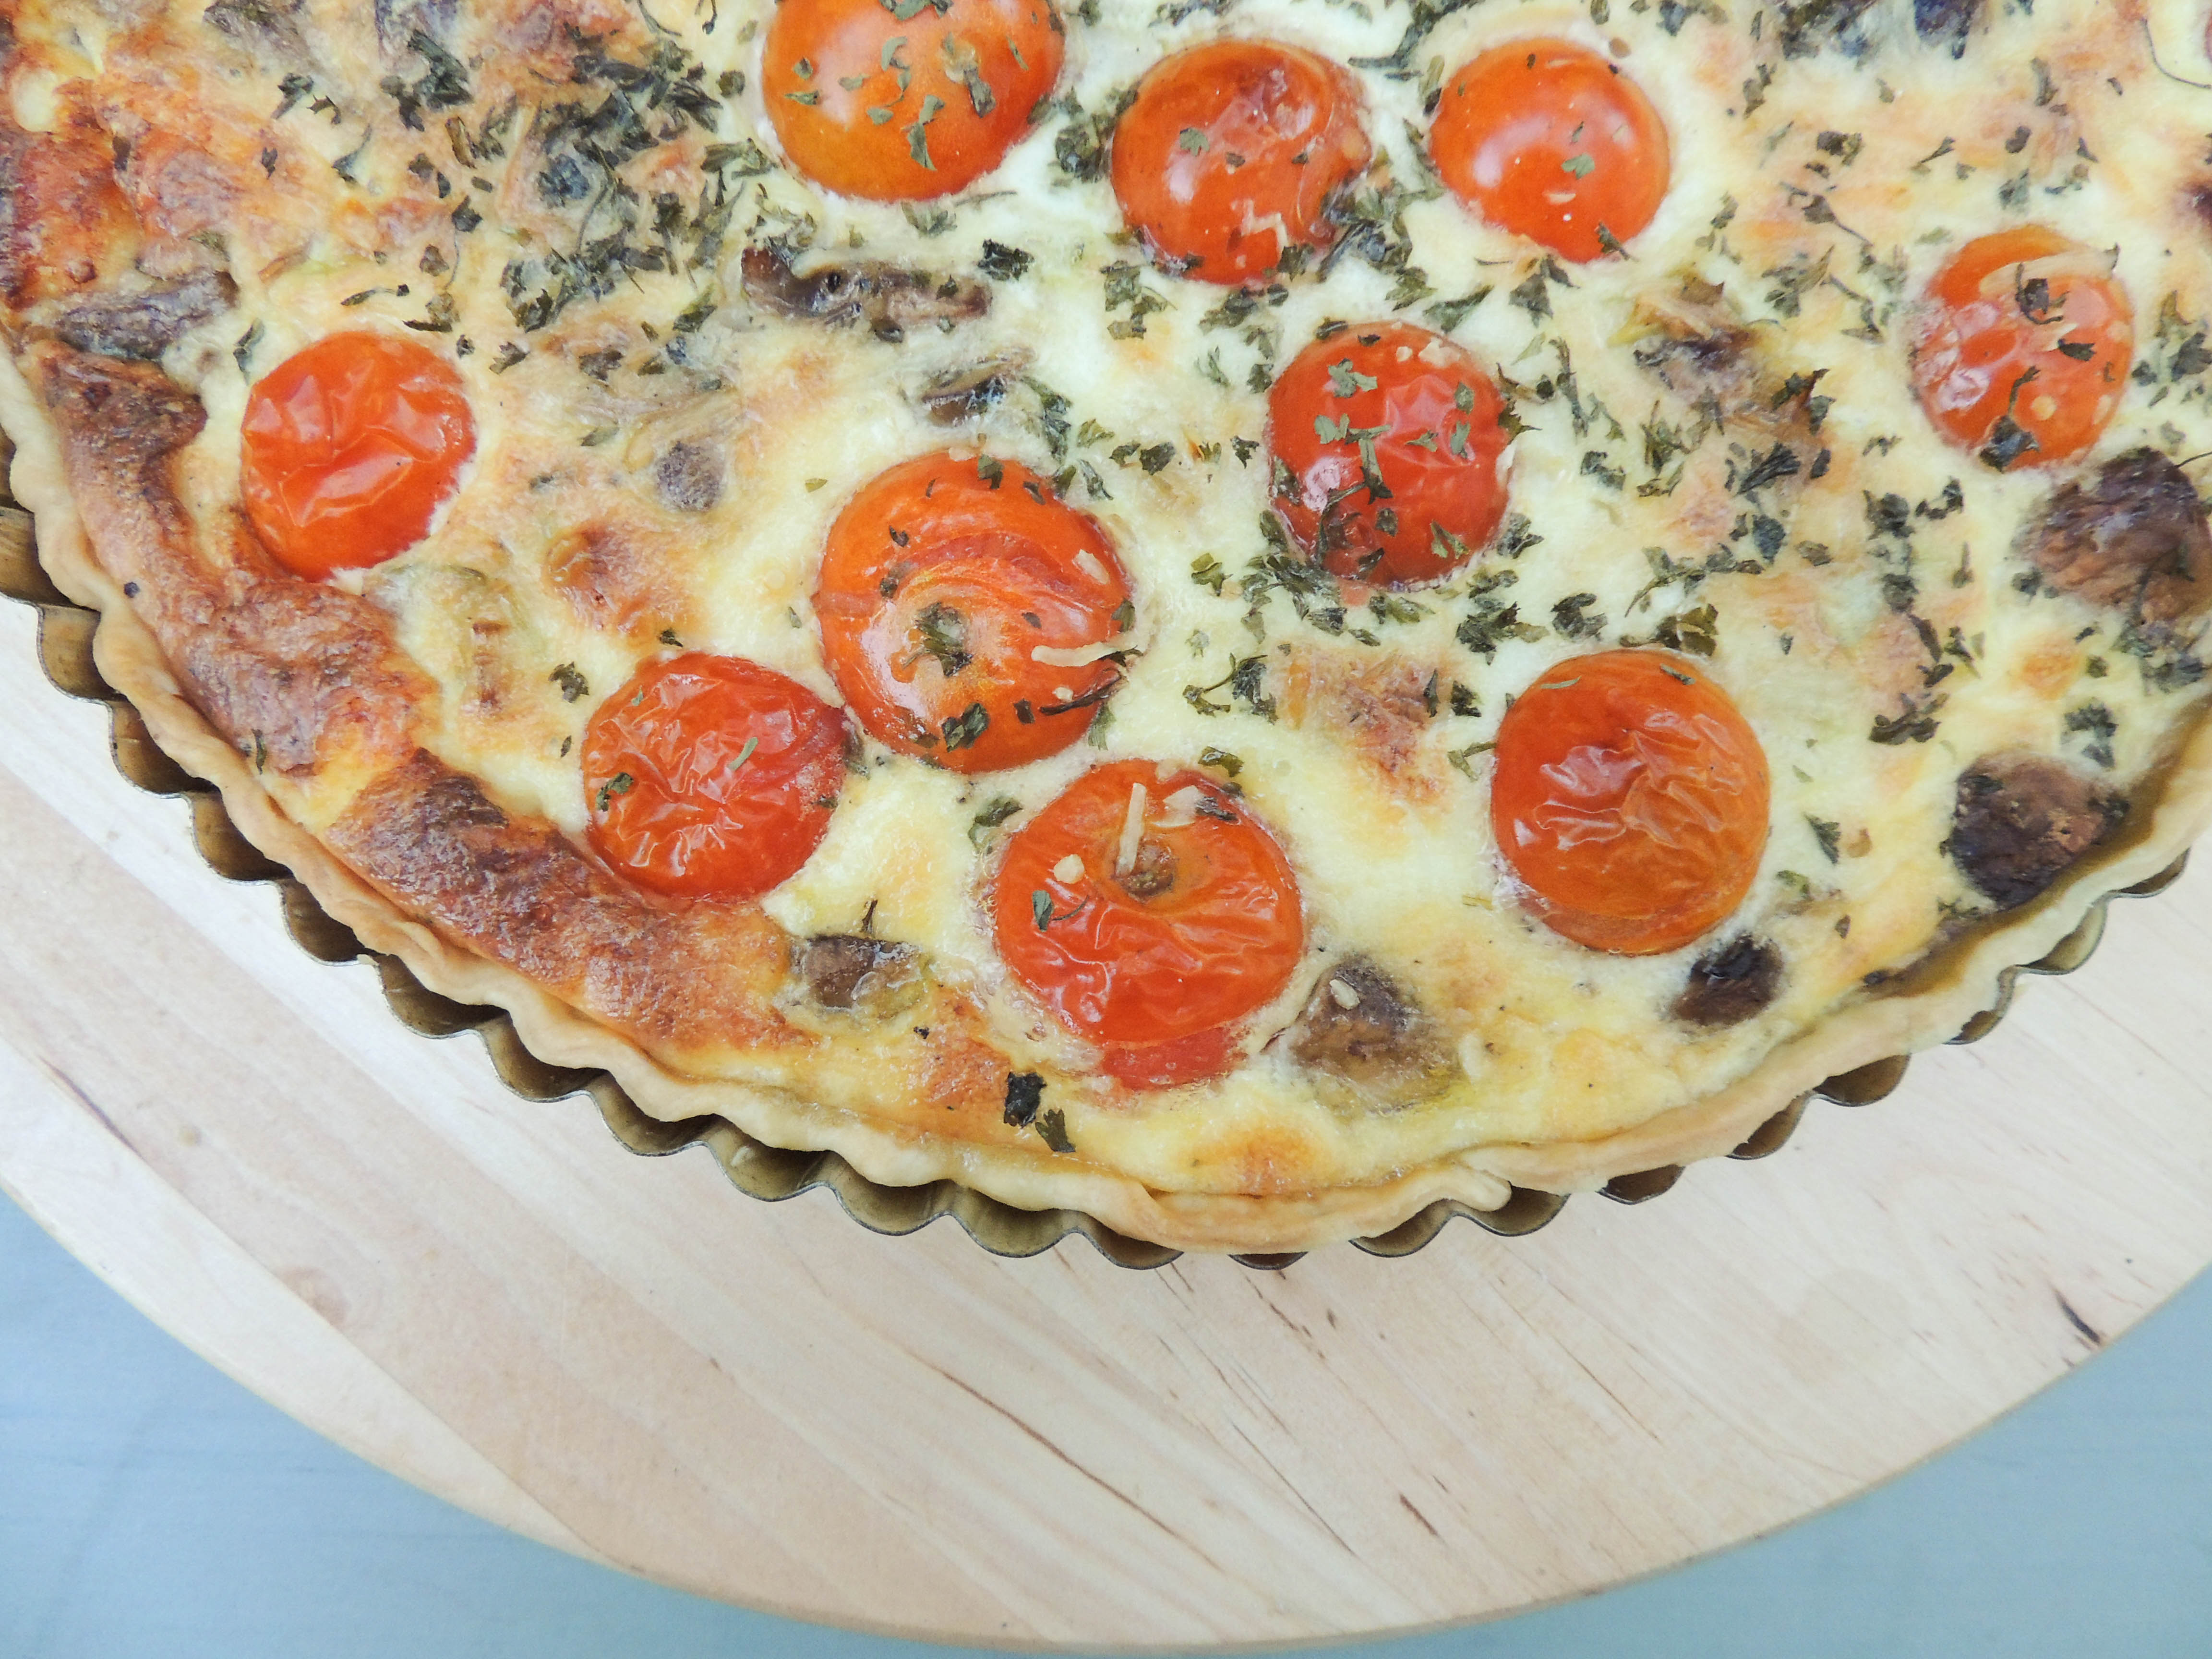 Leek, mushrooms and tomatoes quiche – The Petit Gourmet